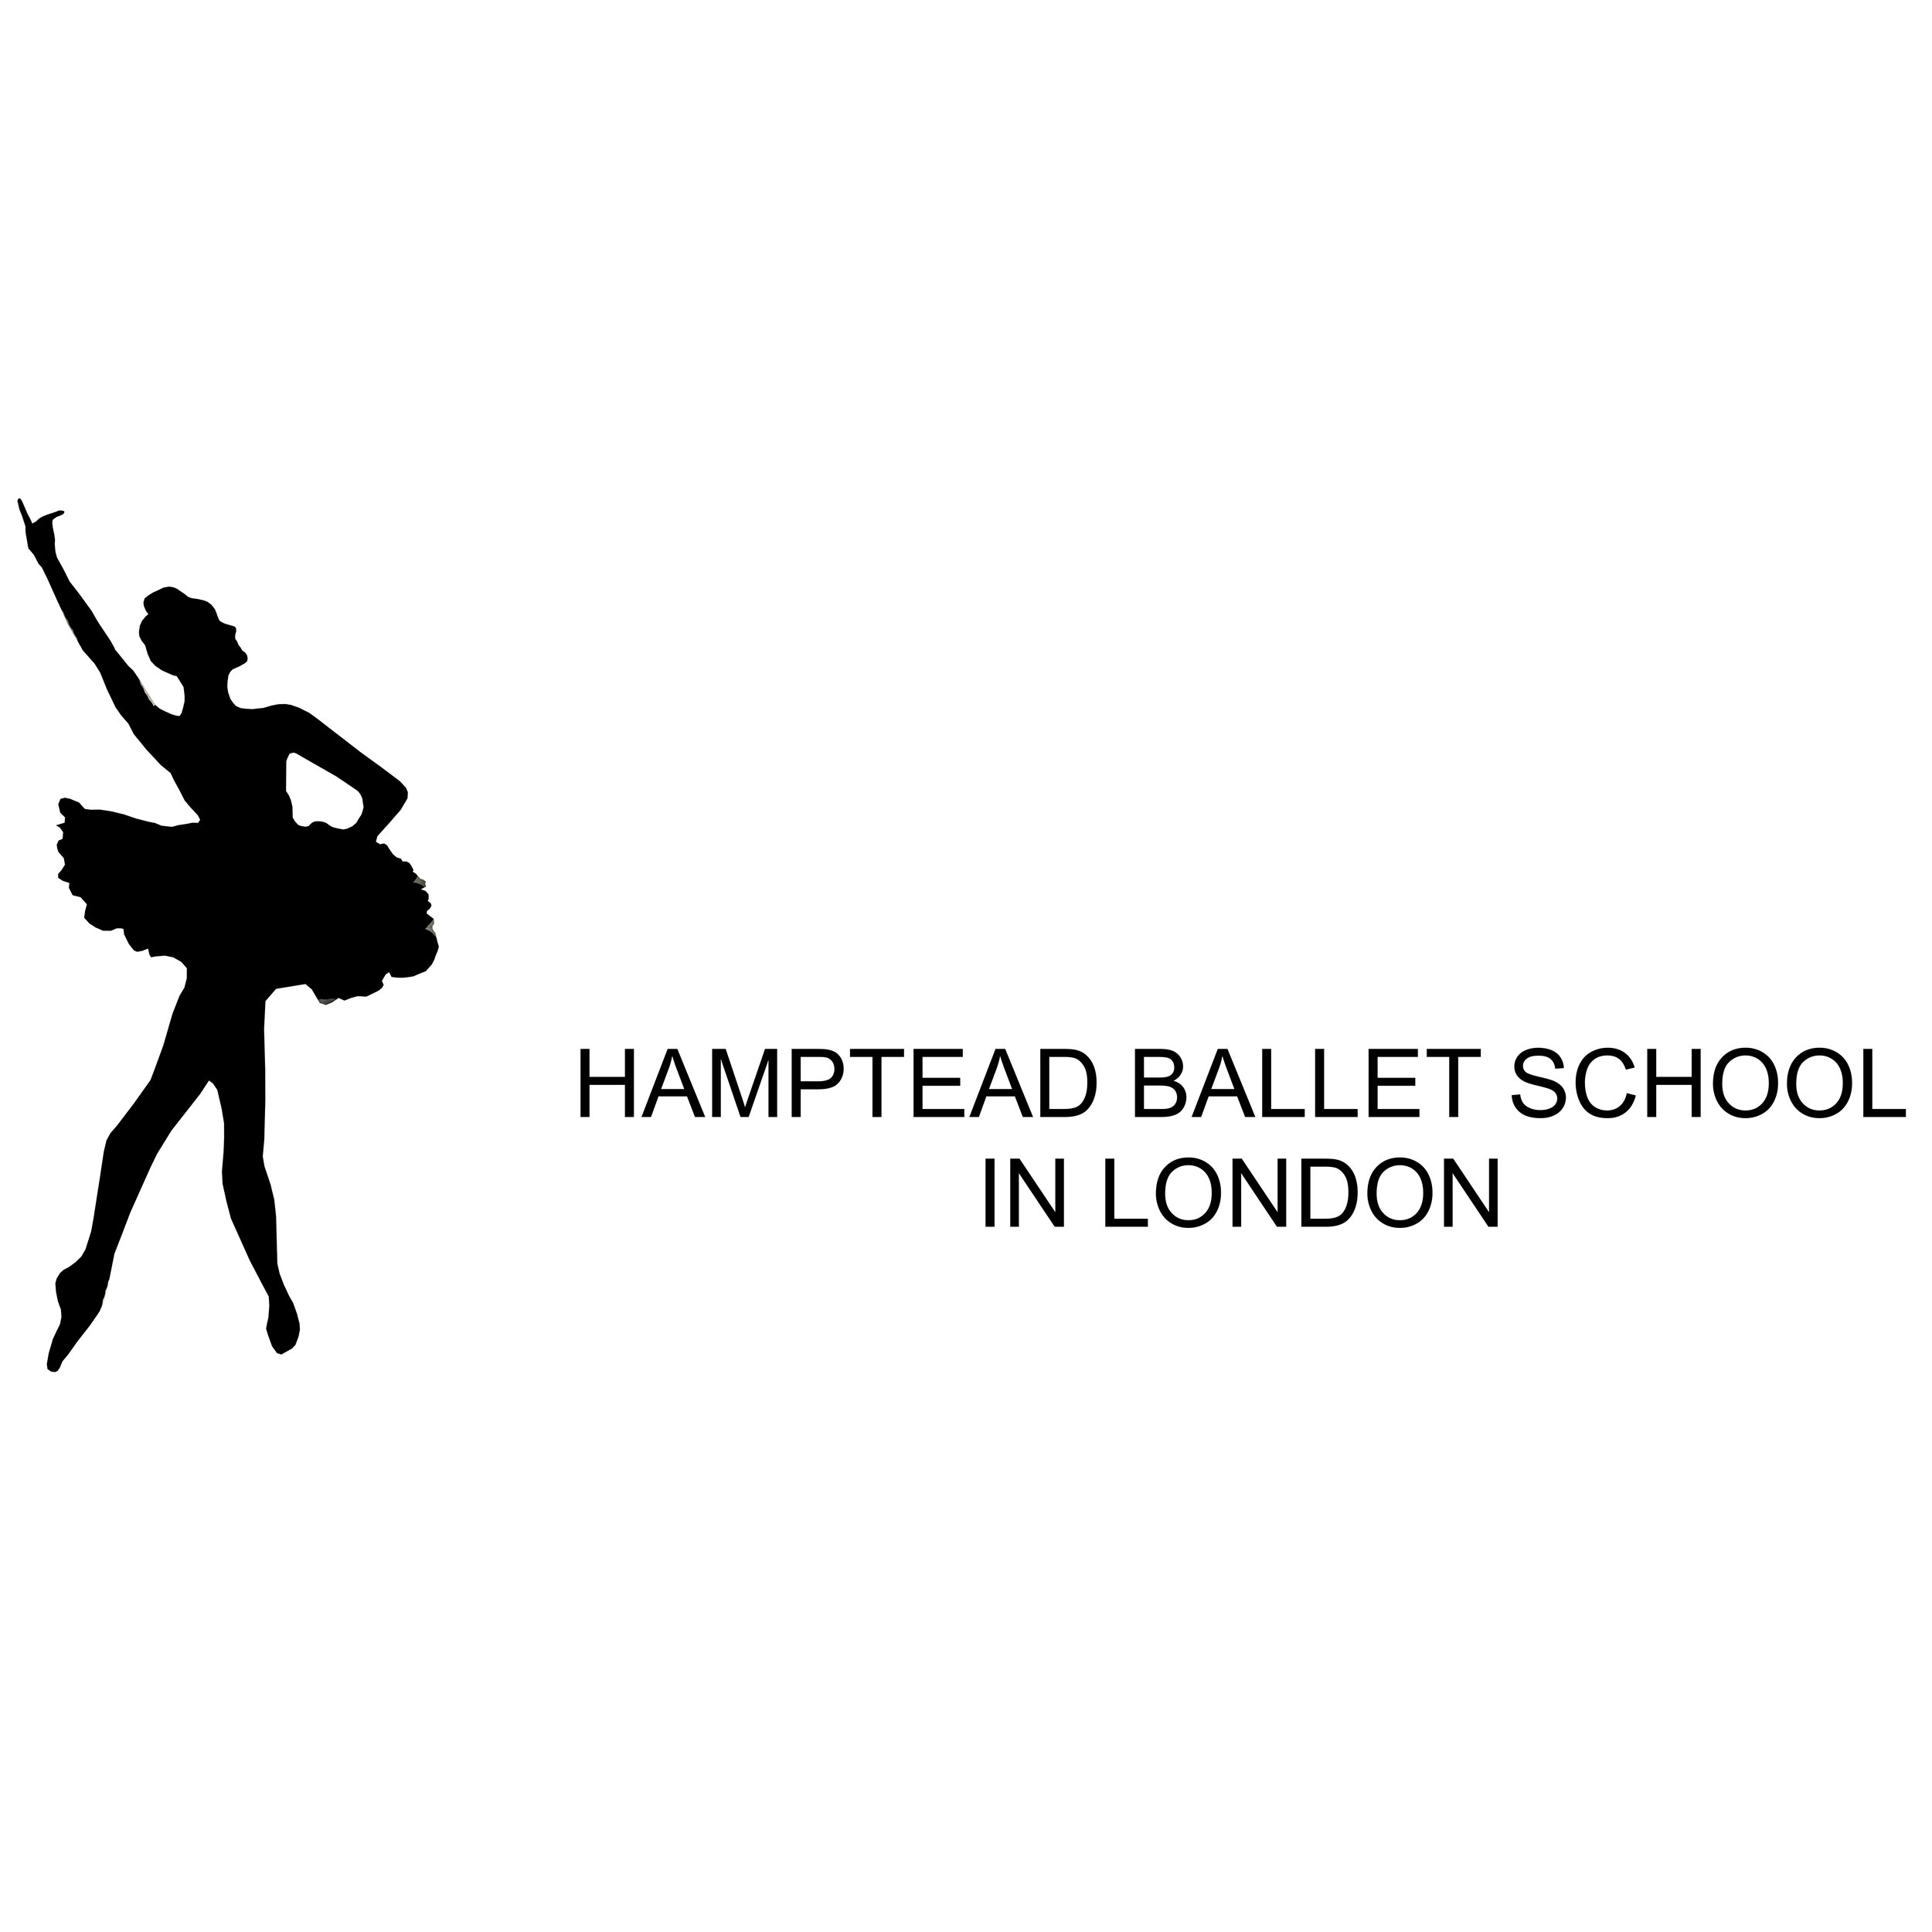 Hampstead Ballet School